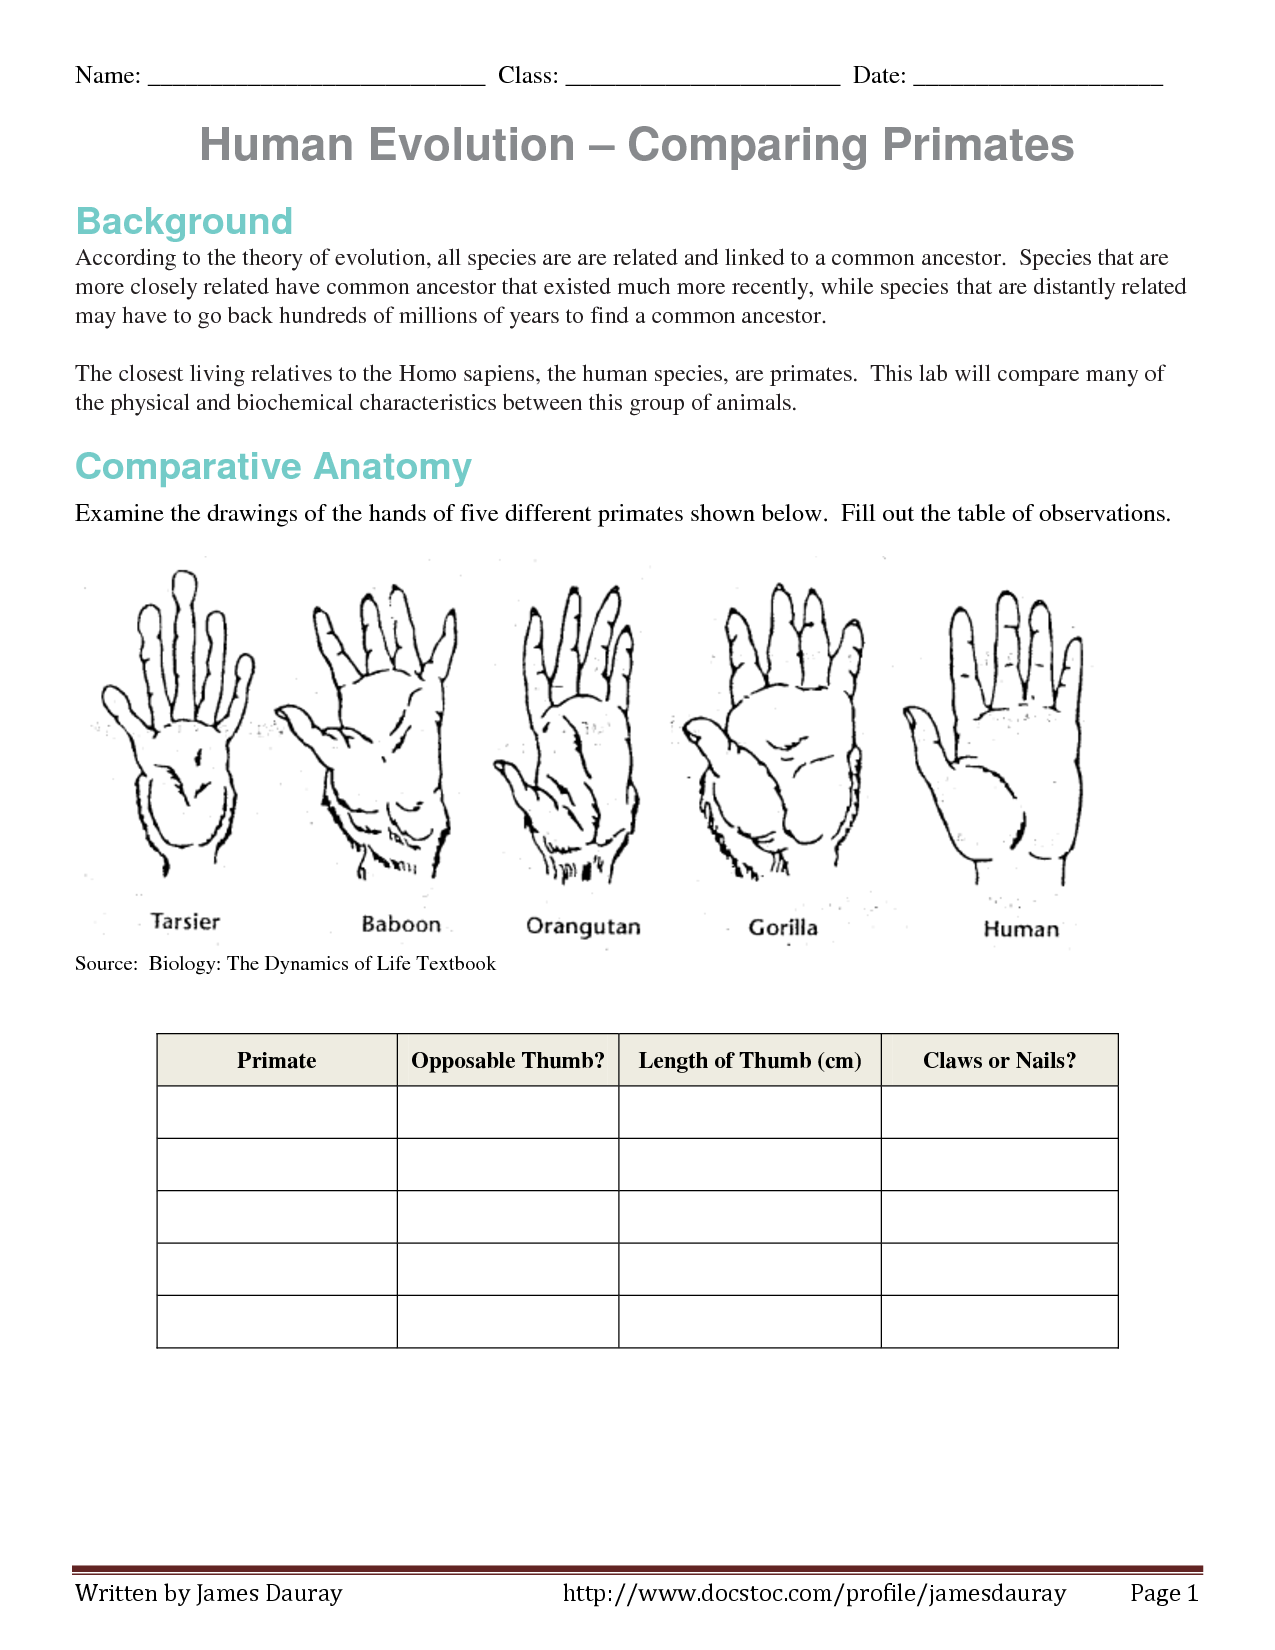 hight resolution of Comparative Anatomy Worksheet Answers - Anatomy Drawing Diagram